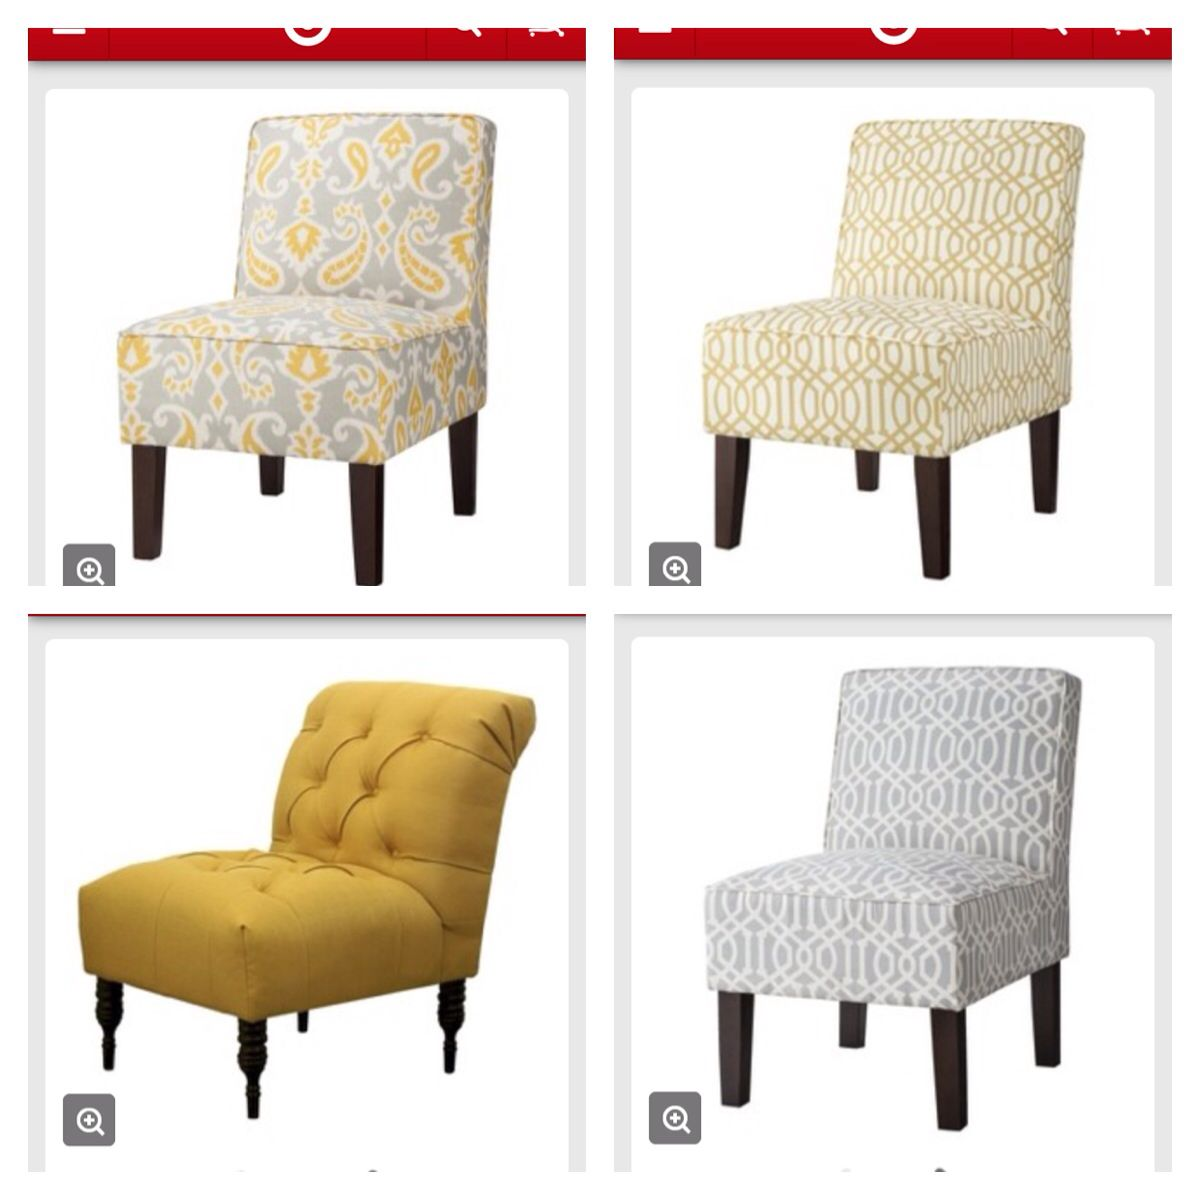 target chairs new home decor ideas pinterest living room decor from target tj maxx and overstock